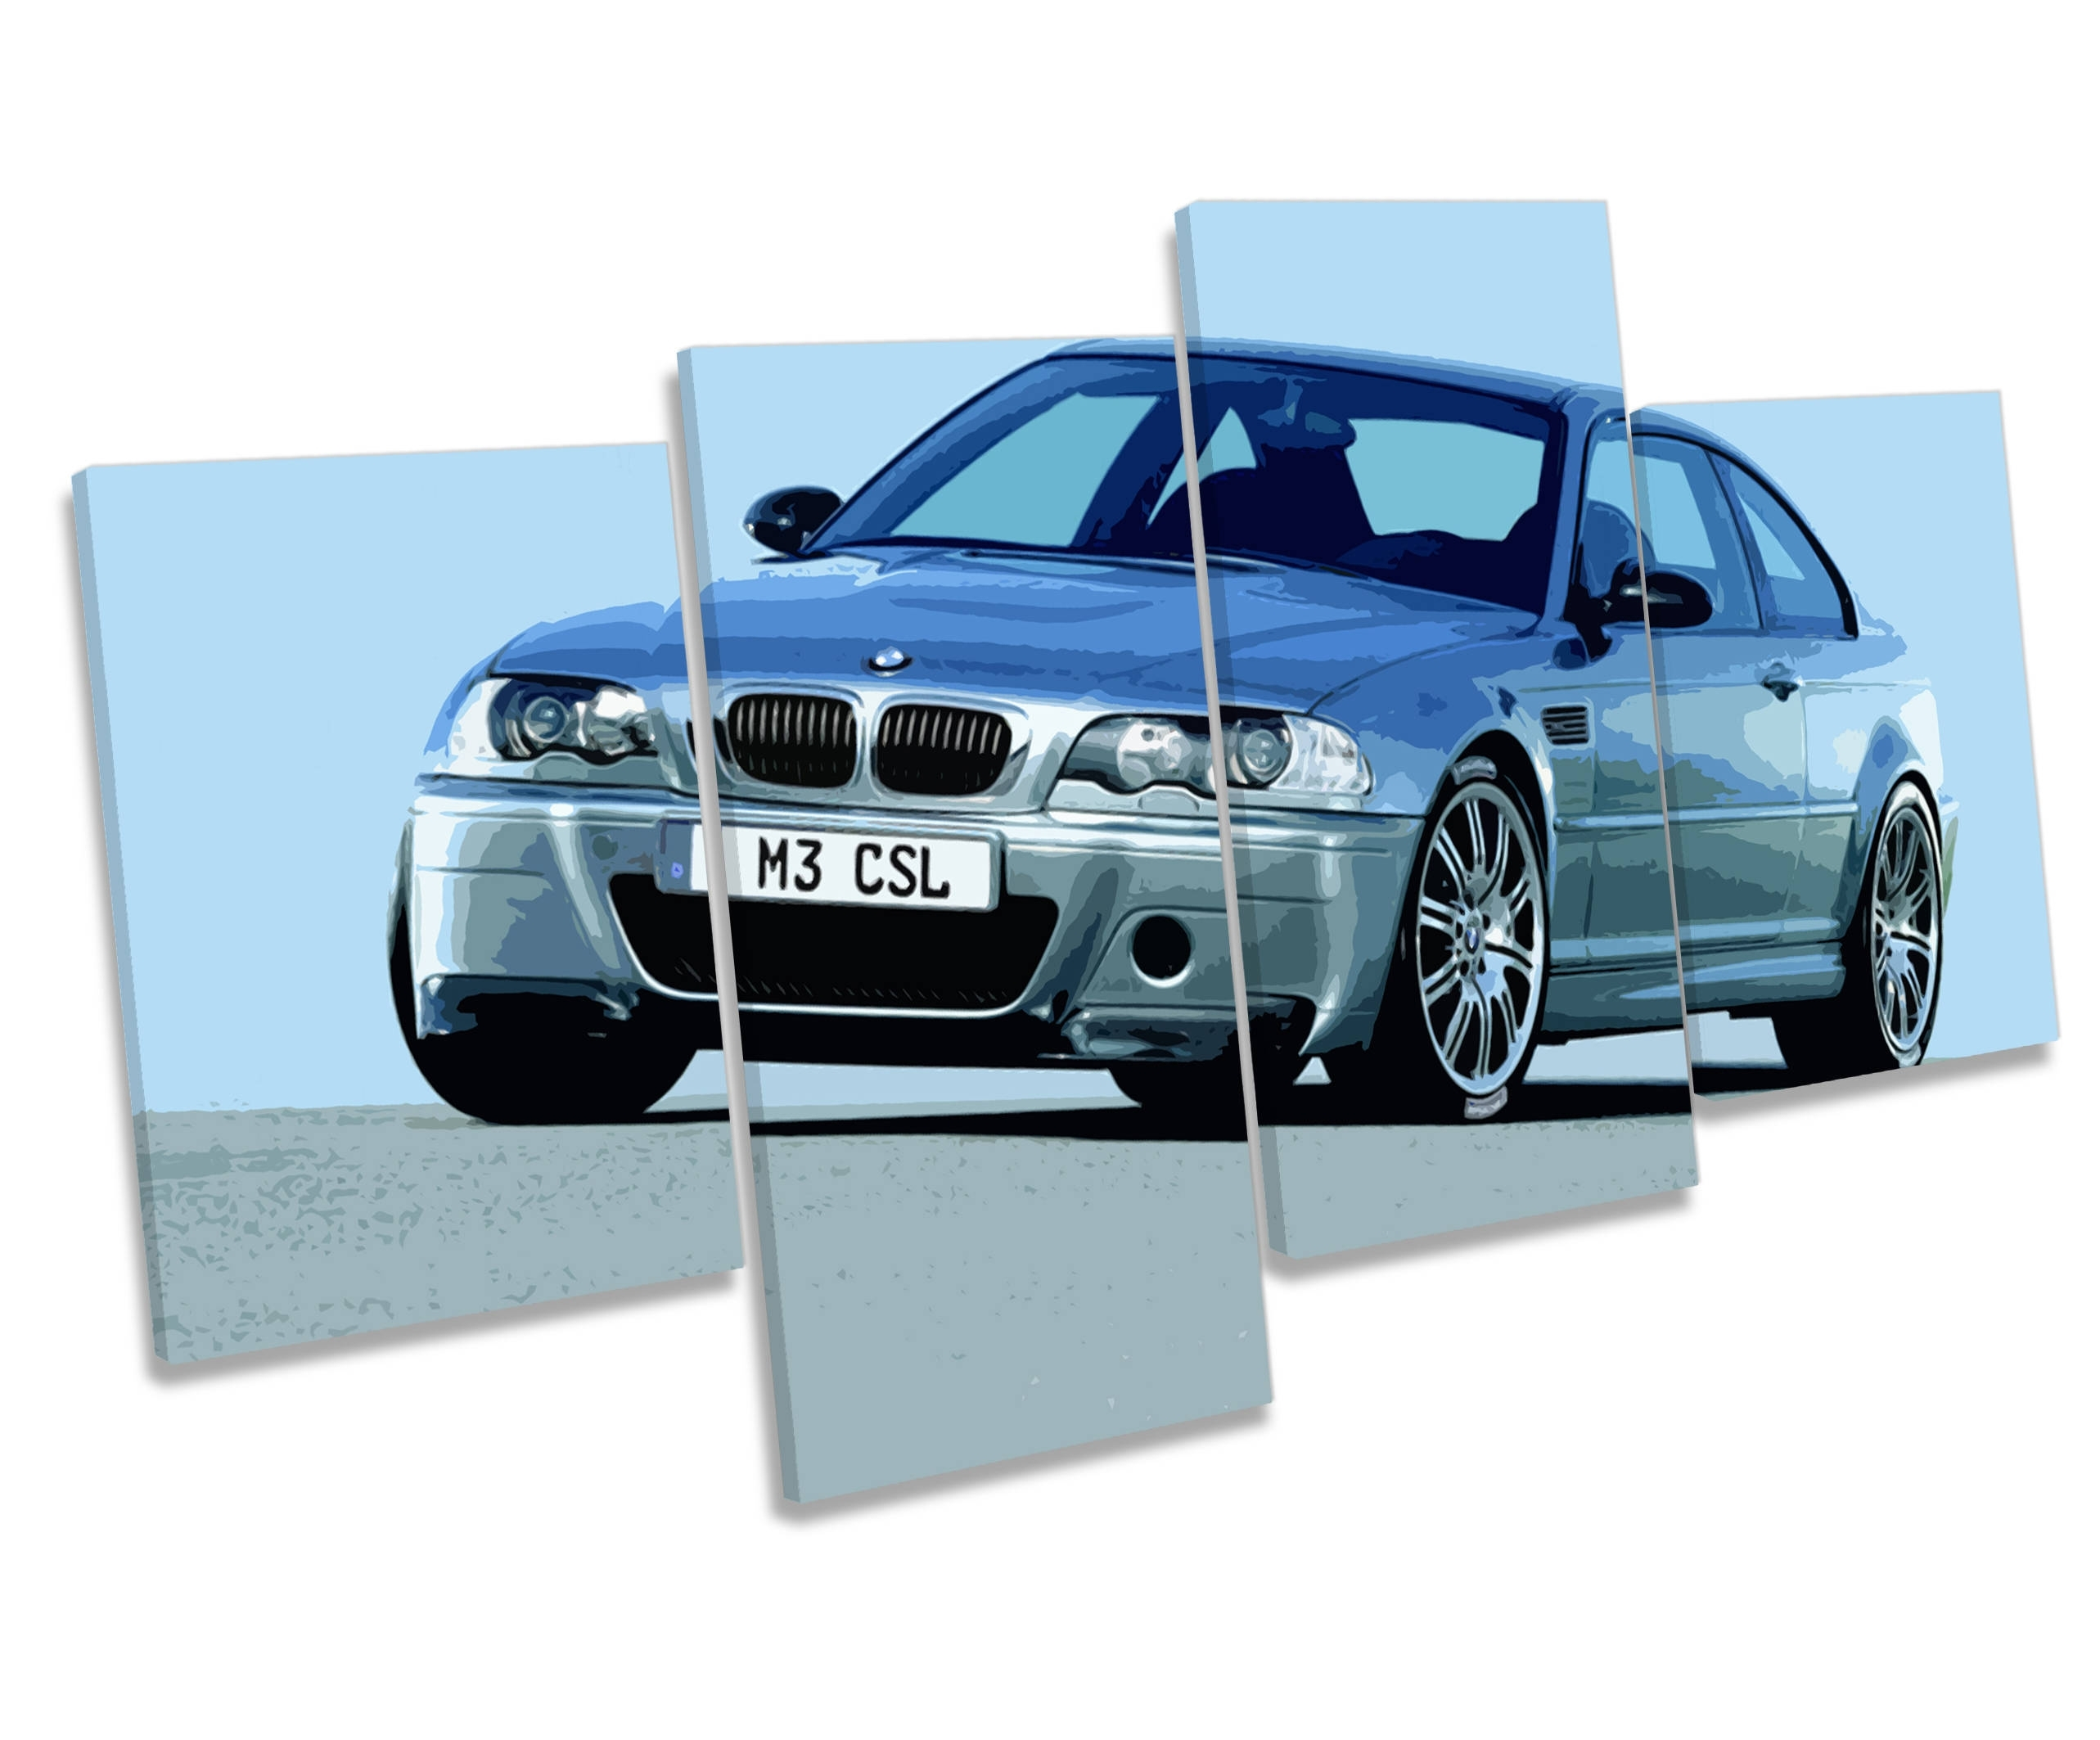 Bmw M3 Csl Car Multi Canvas Wall Art Box Framed Print Picture Throughout Most Recent Bmw Canvas Wall Art (View 15 of 15)